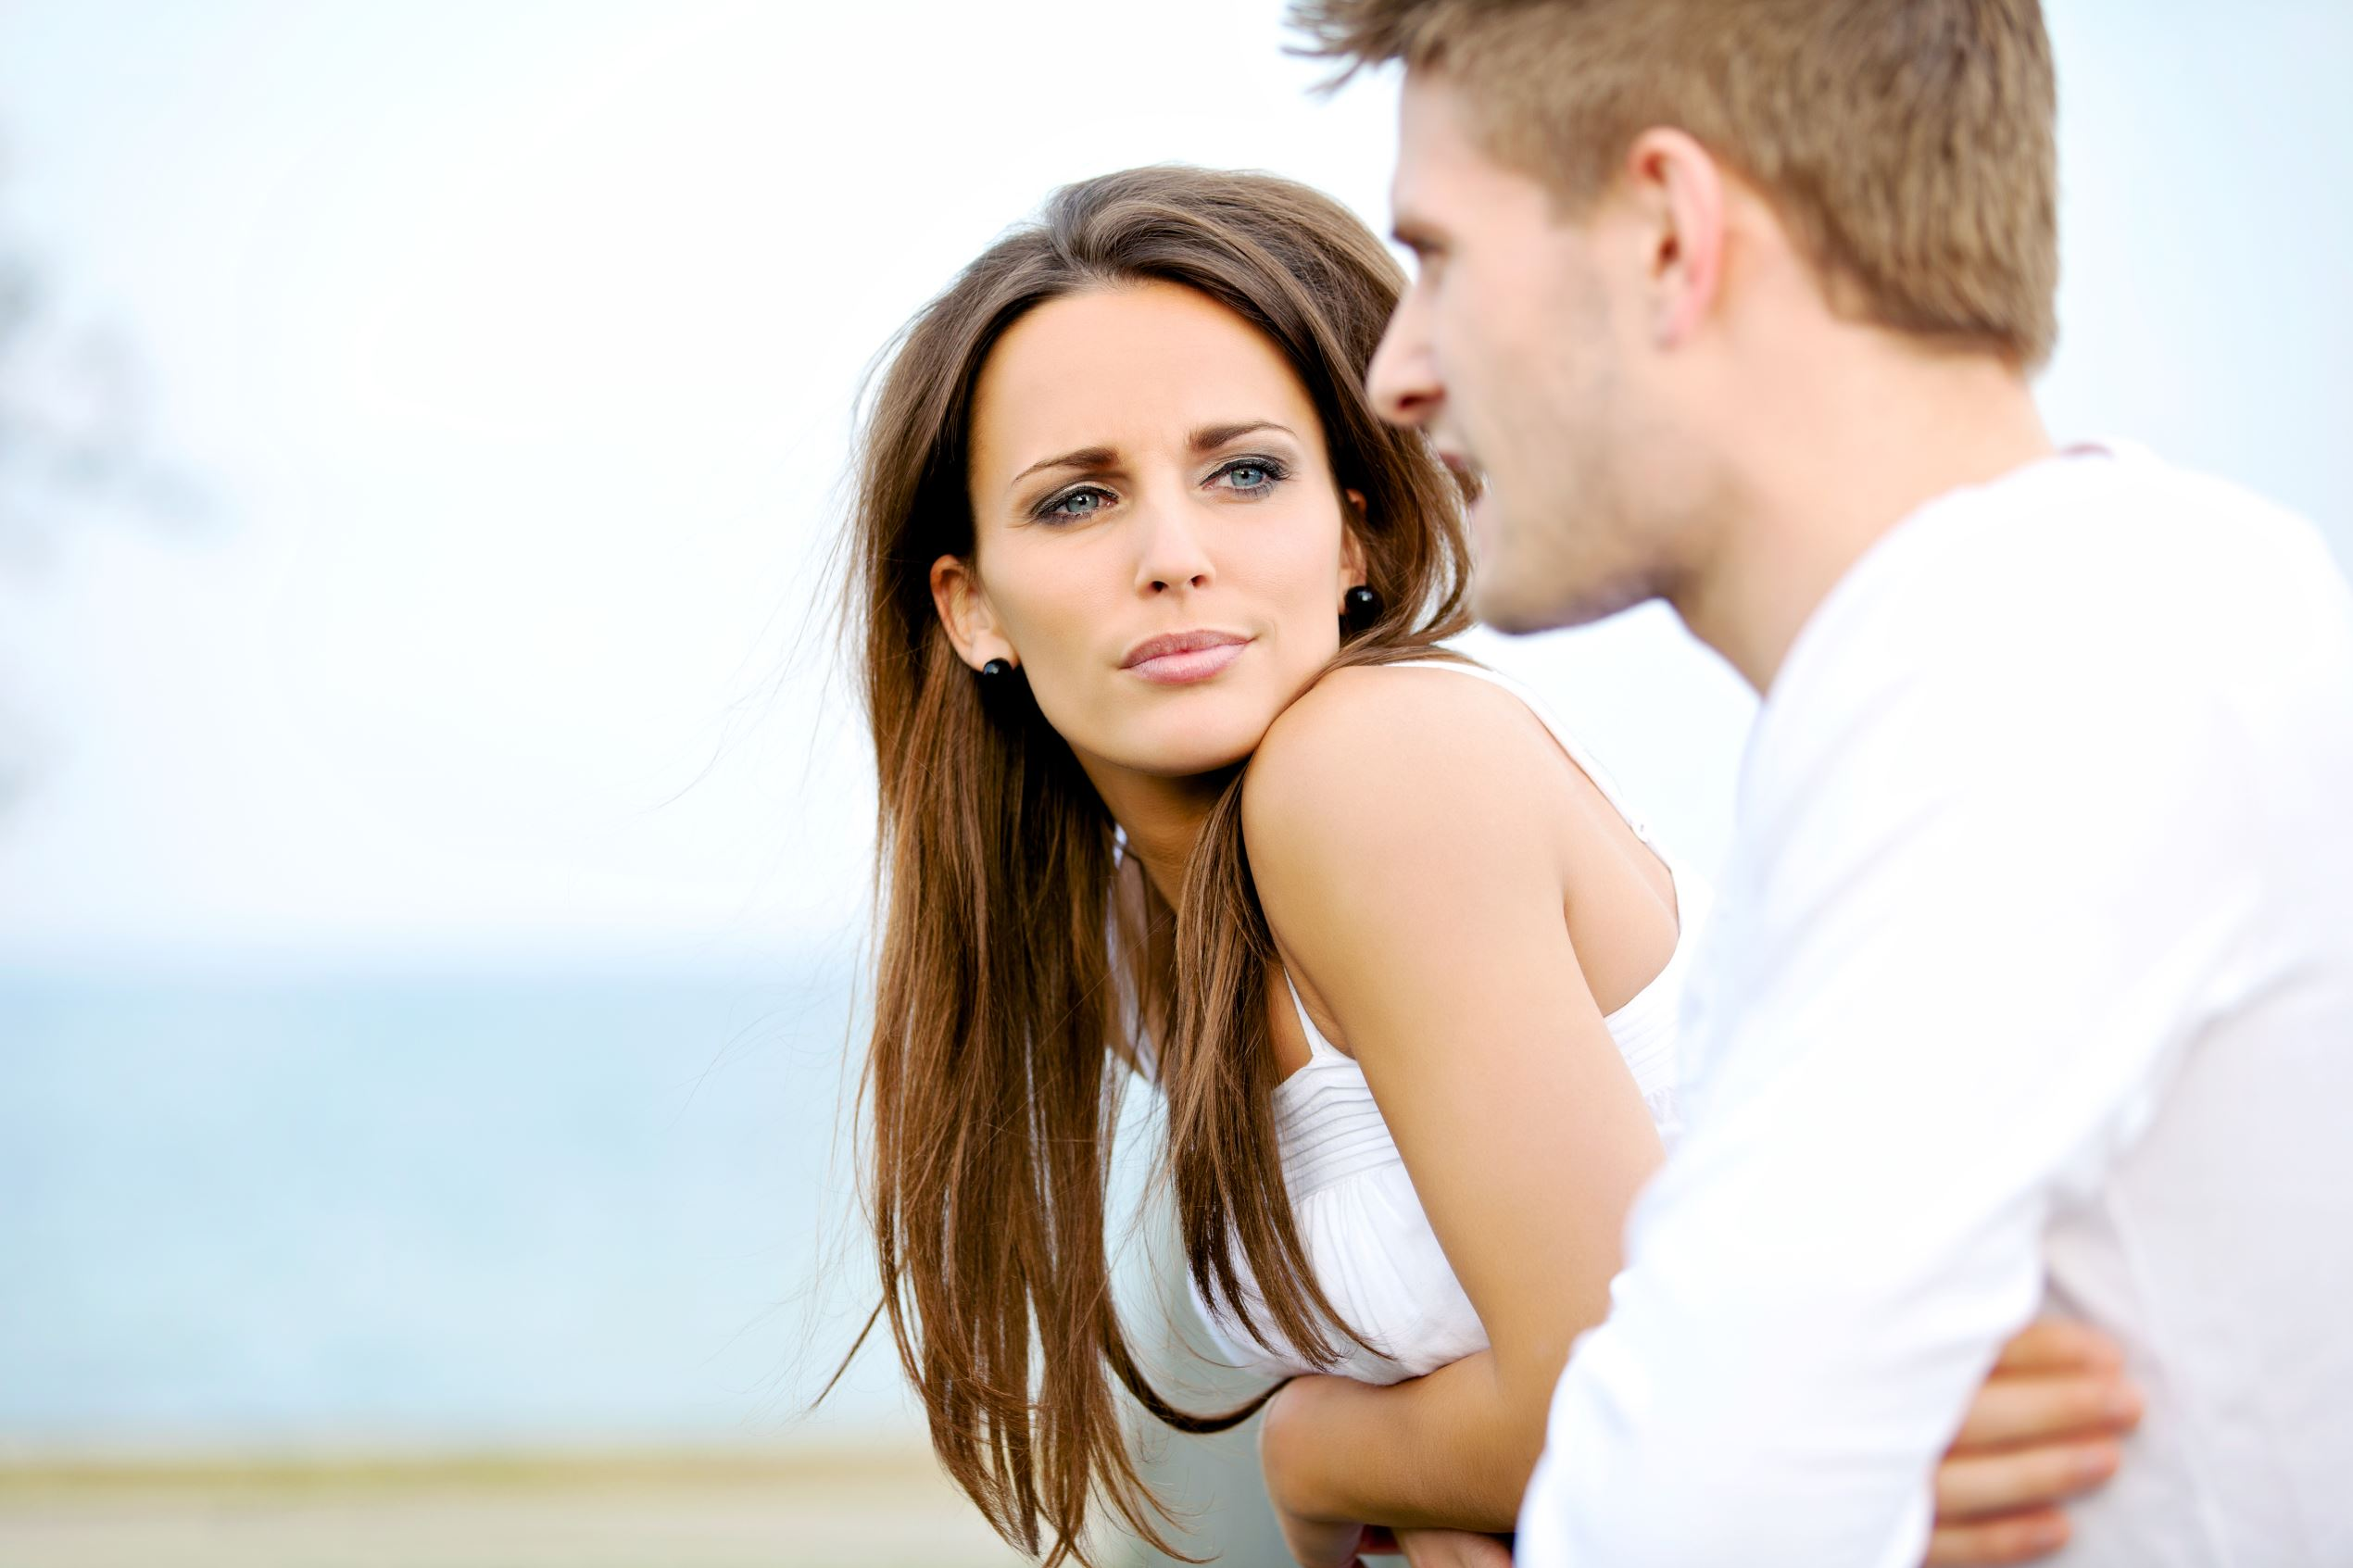 Questions to ask when dating a divorced woman